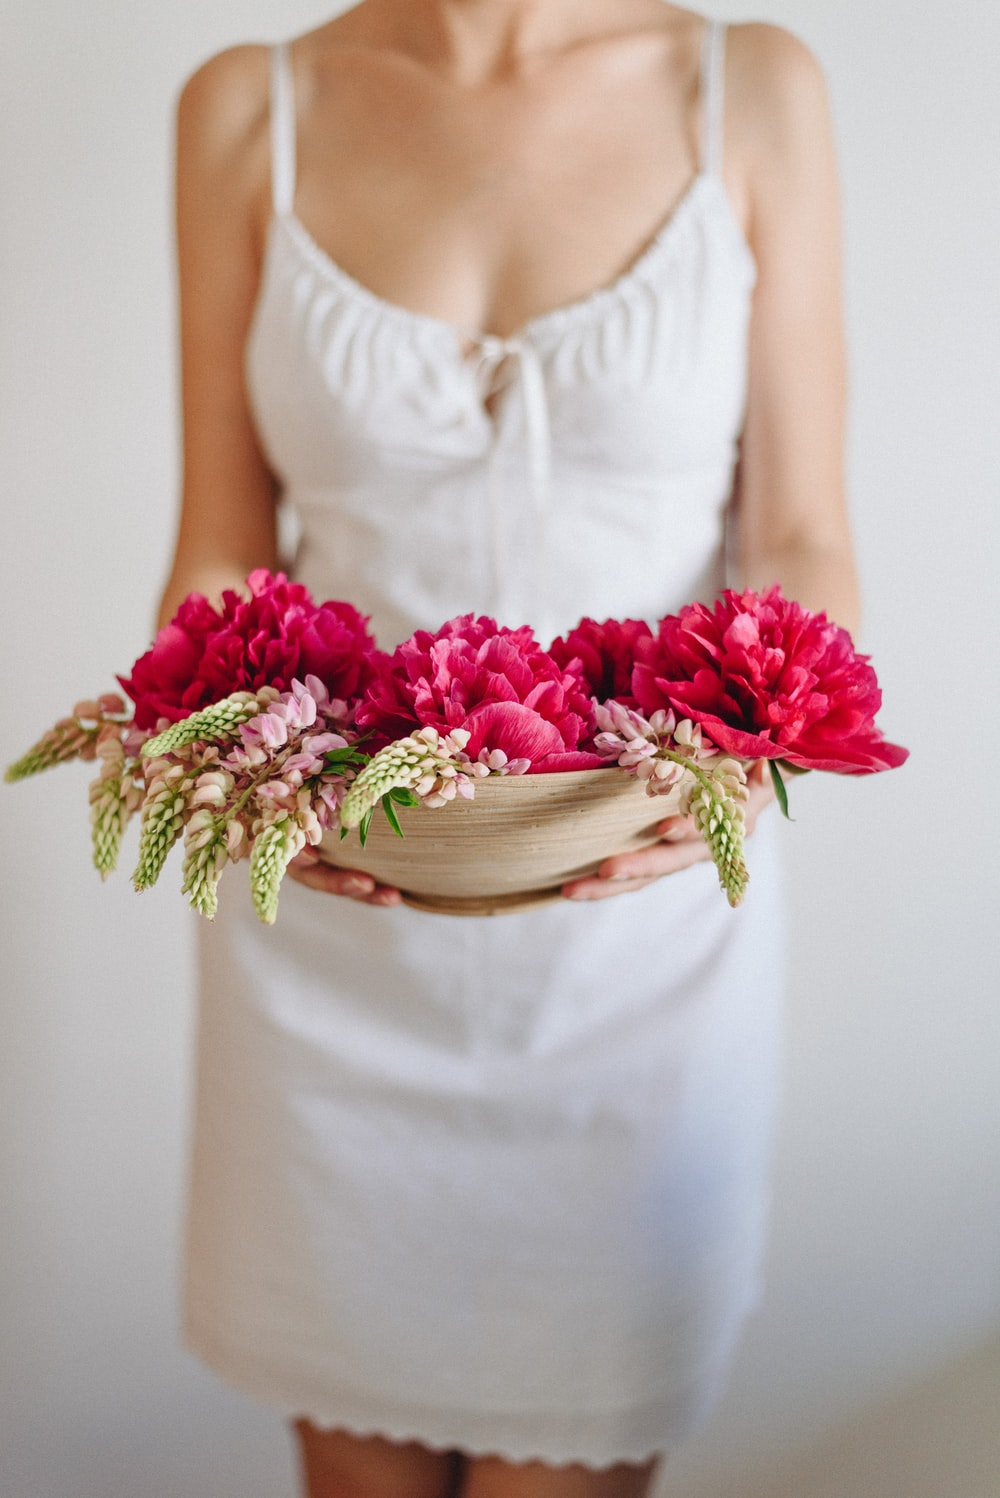 woman in white dress carrying red flowers